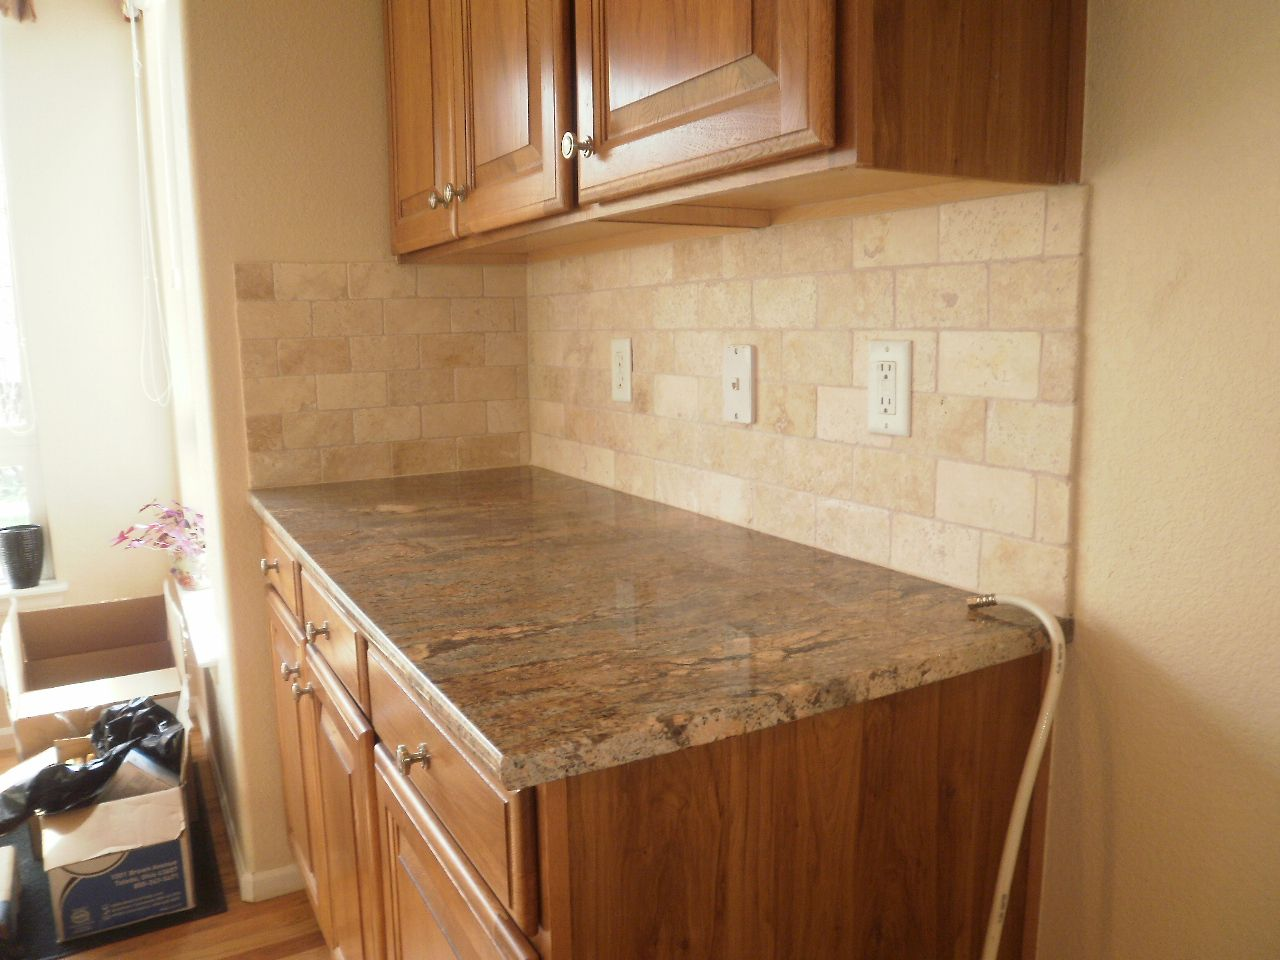 Travertine Floors In Kitchen Travertine Tile Patterns For Kitchens Range Backsplash 3x6